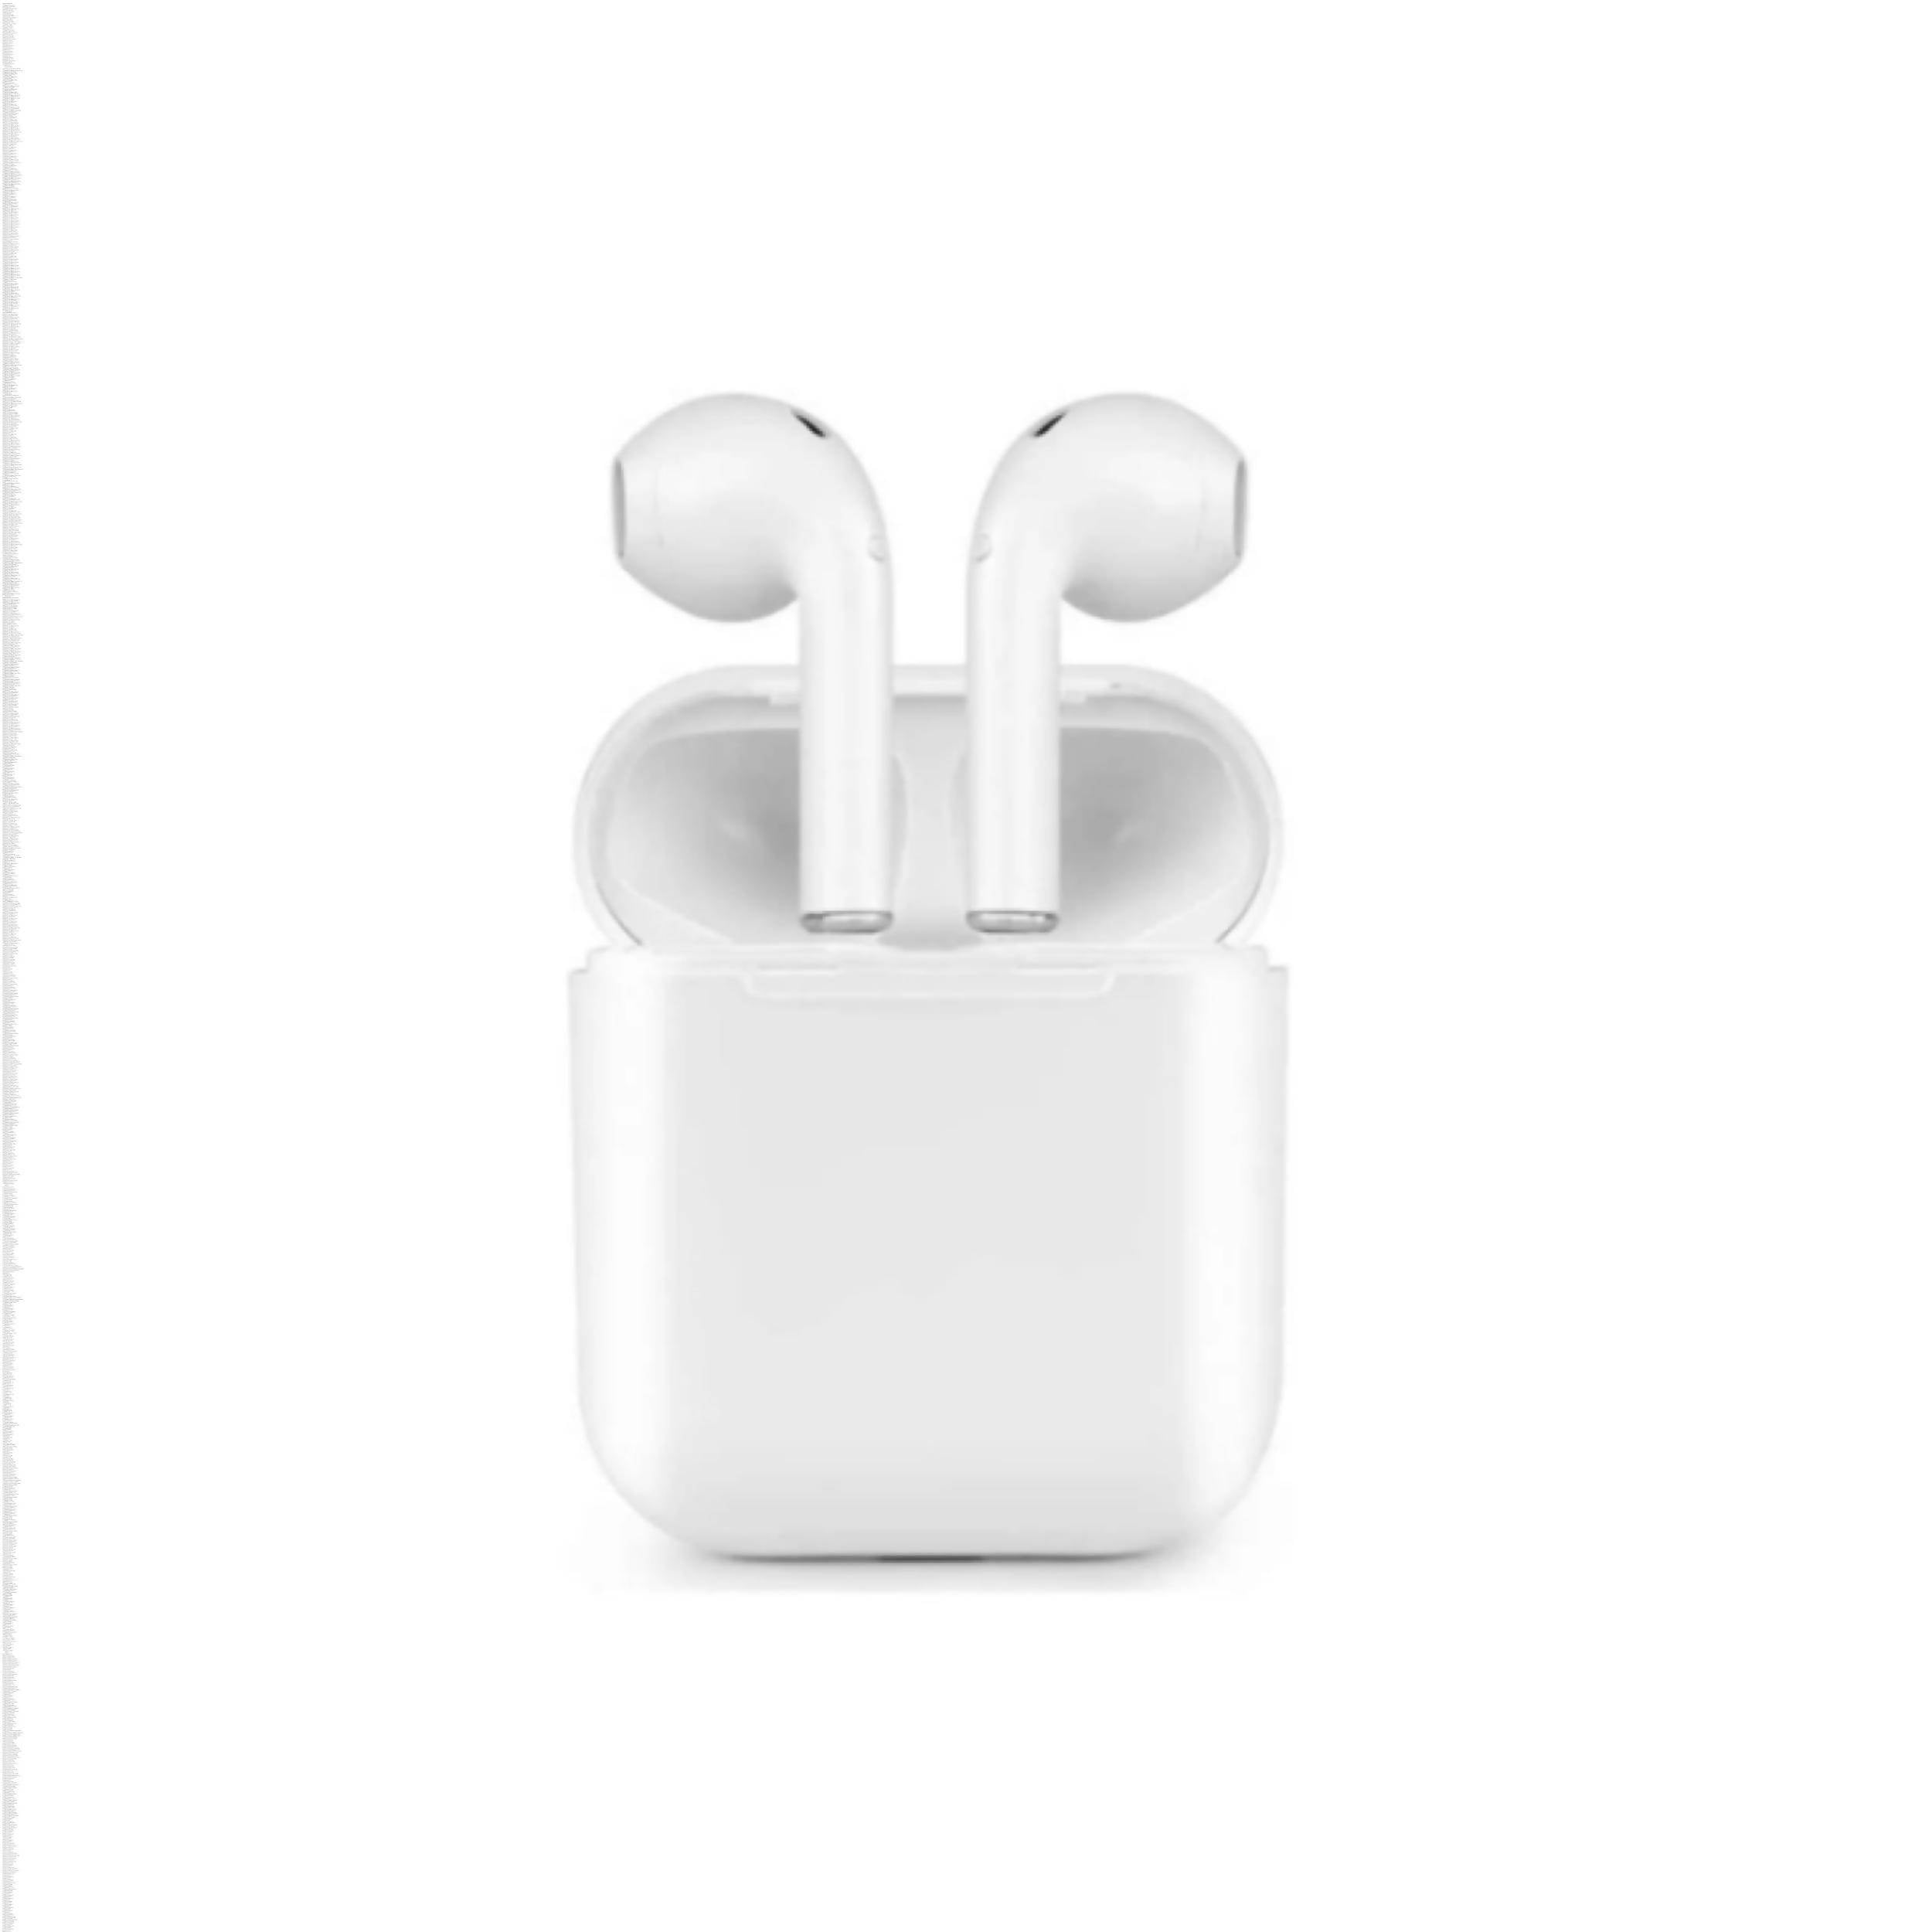 Audífonos Tws Air Pods Con Estuche Power bank Para Celular - APE-Plazas